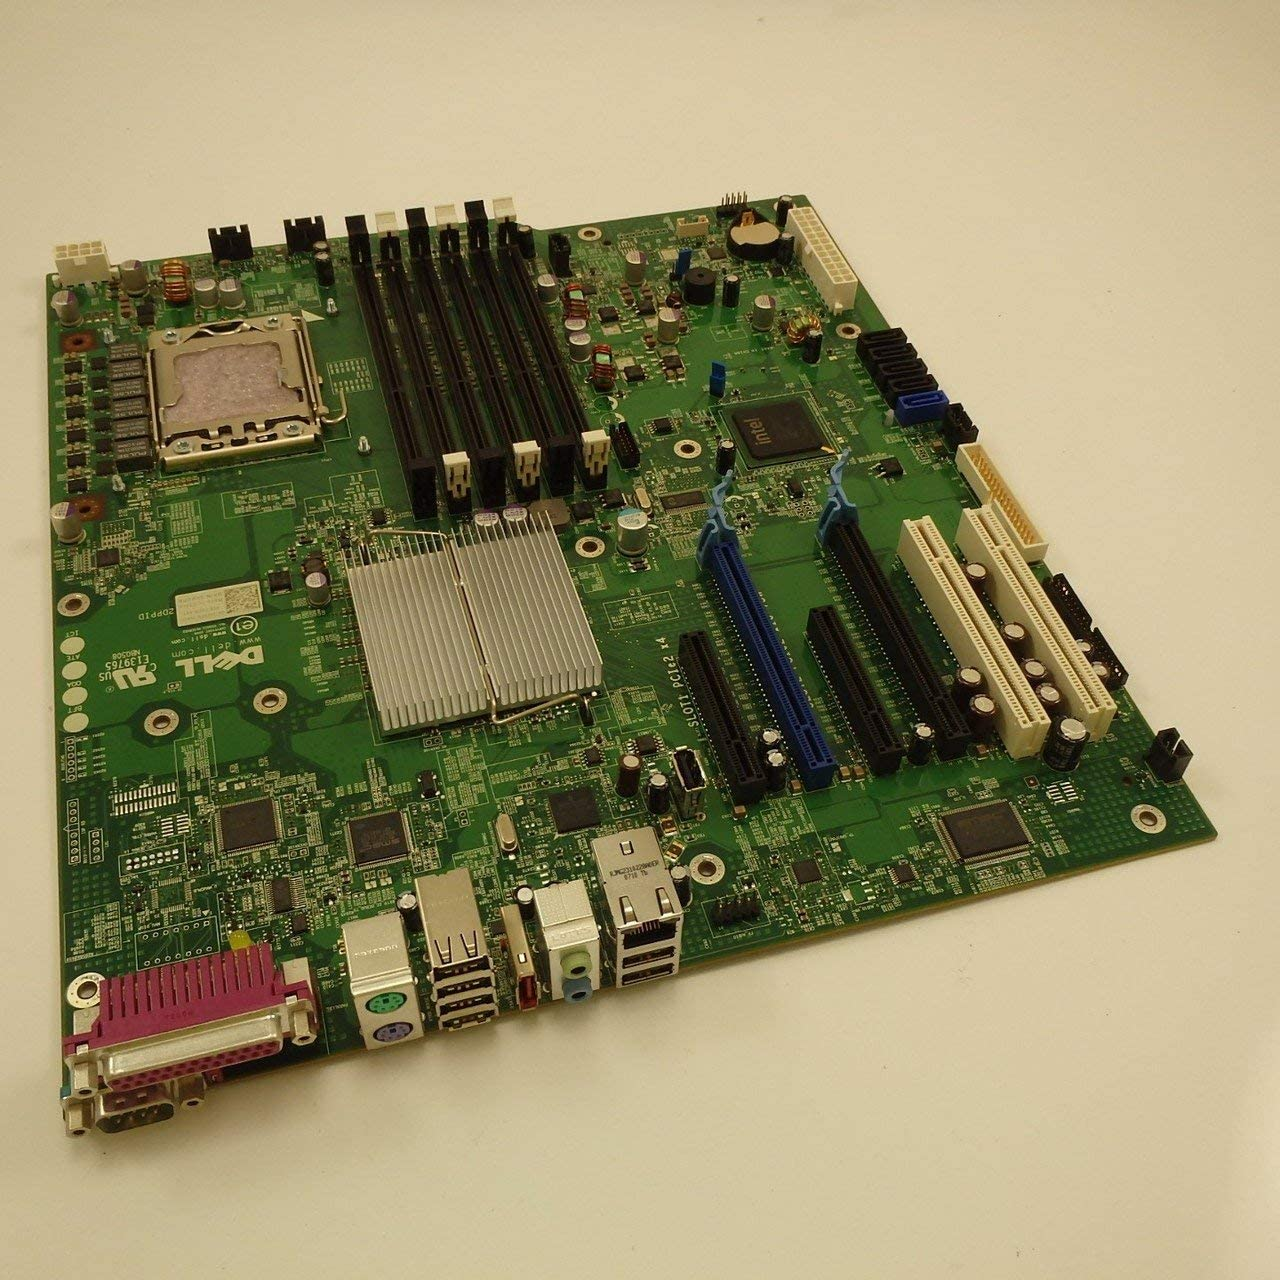 DELL XPDFK Precision Workstation T3500 Motherboard; Supported Processors: Intel Xeon 6-Core (X5670, X5650), Intel Xeon Quad Core (W3550, W3565, W3530, E5640, E5630, E5507) (Renewed)